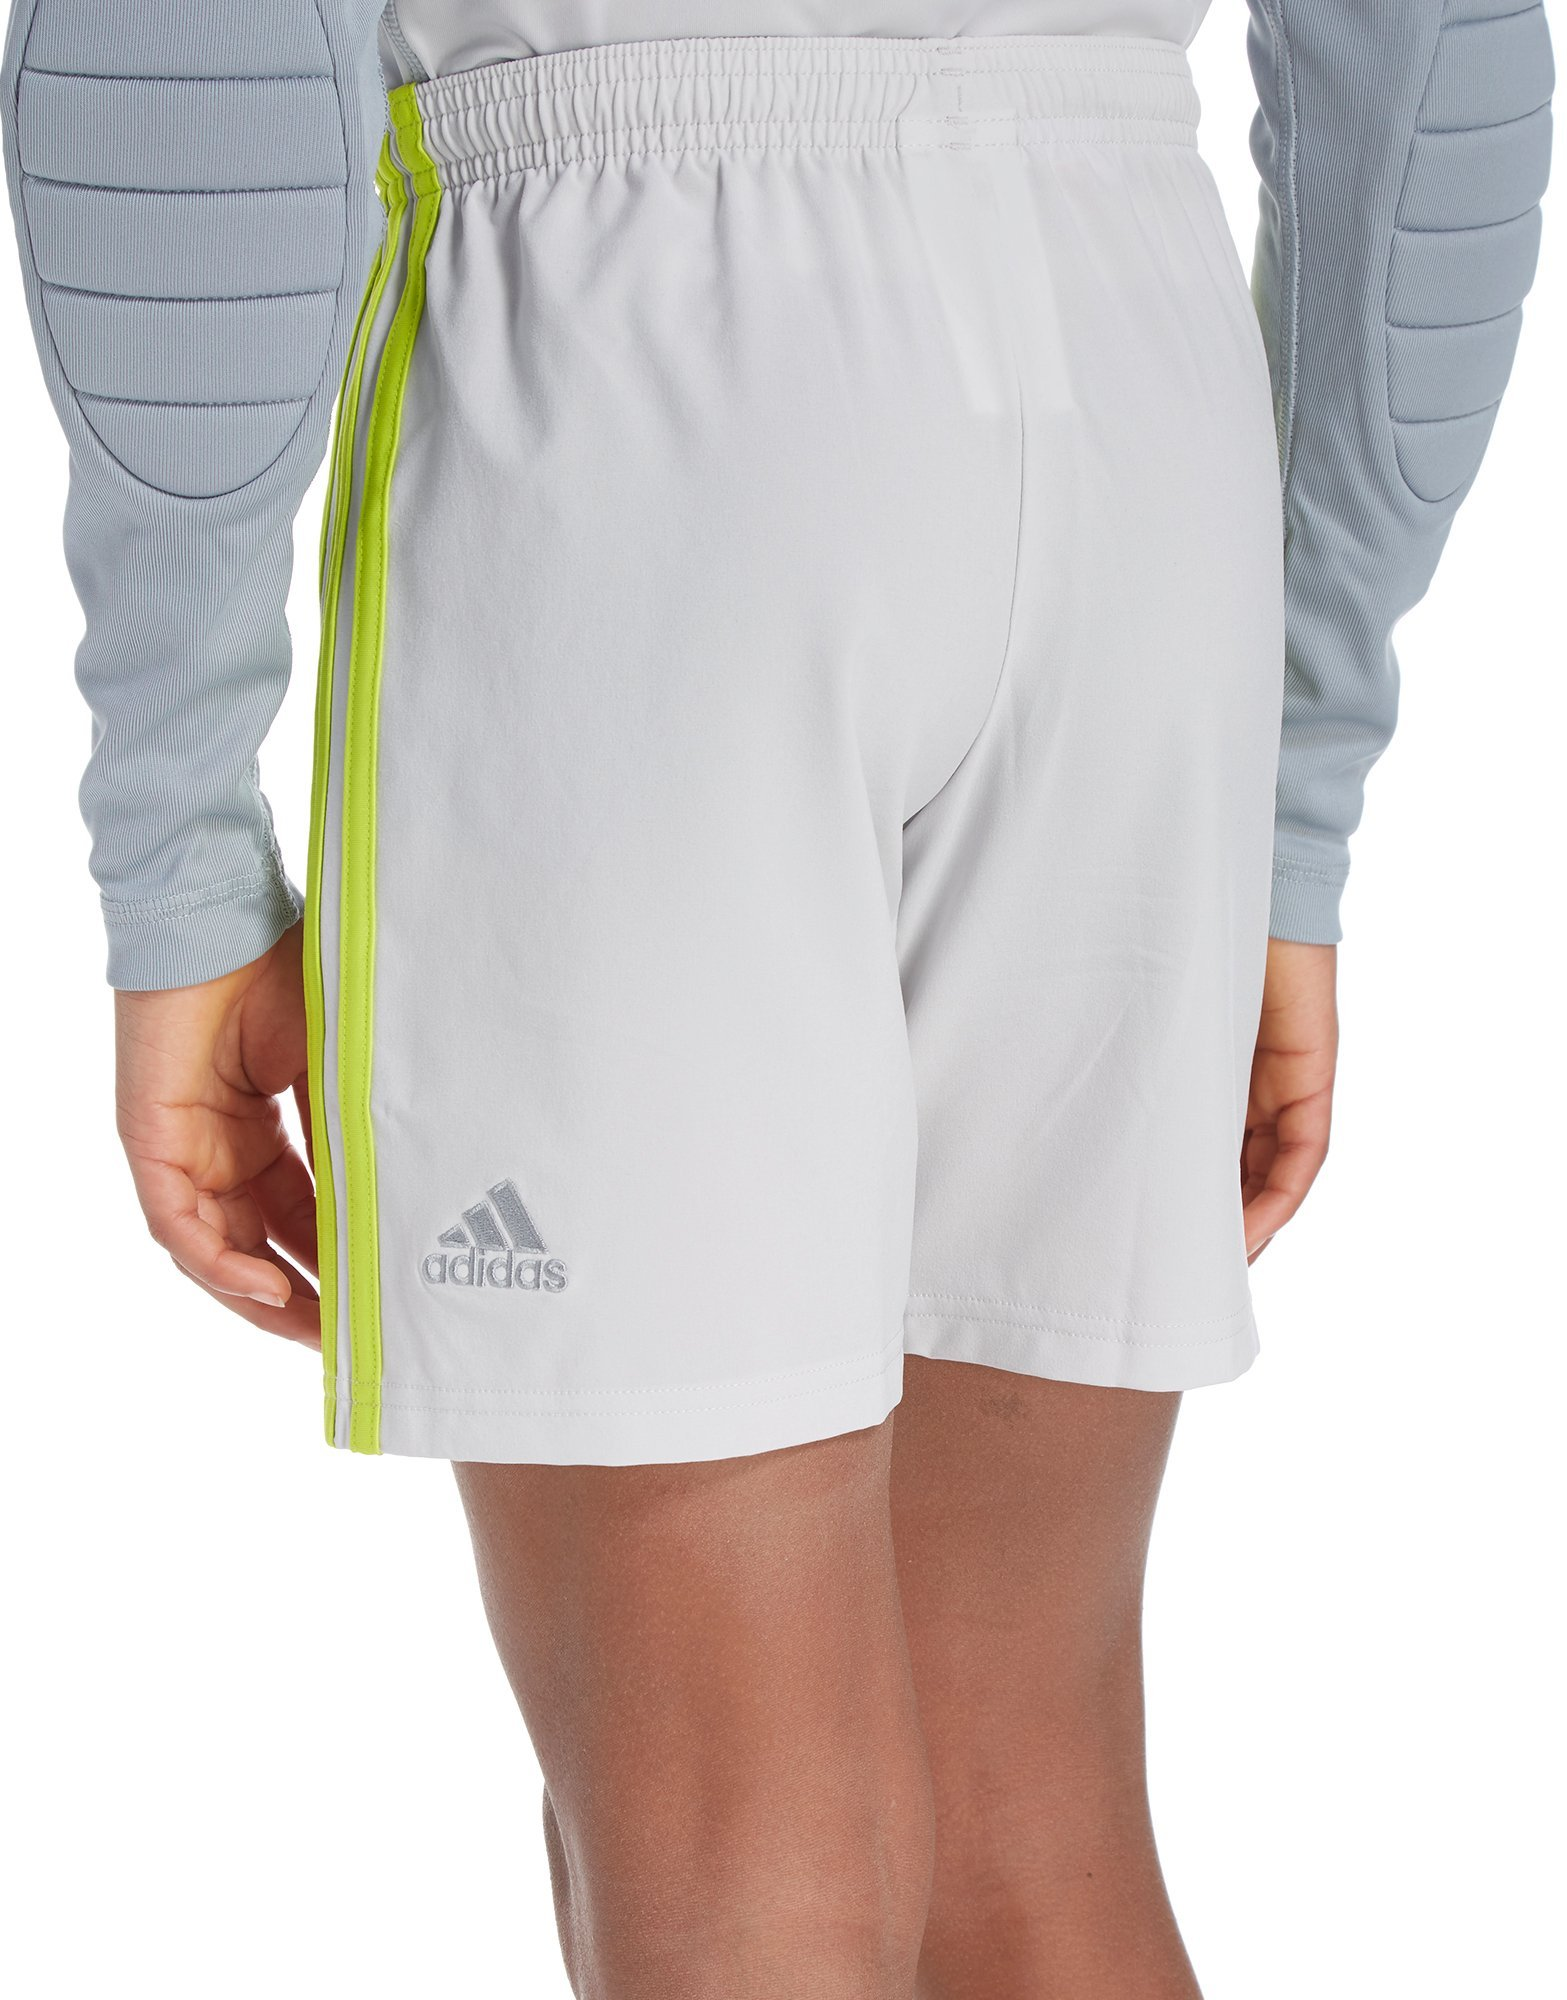 adidas Scotland 2018/19 Home Goalkeeper Shorts Junior